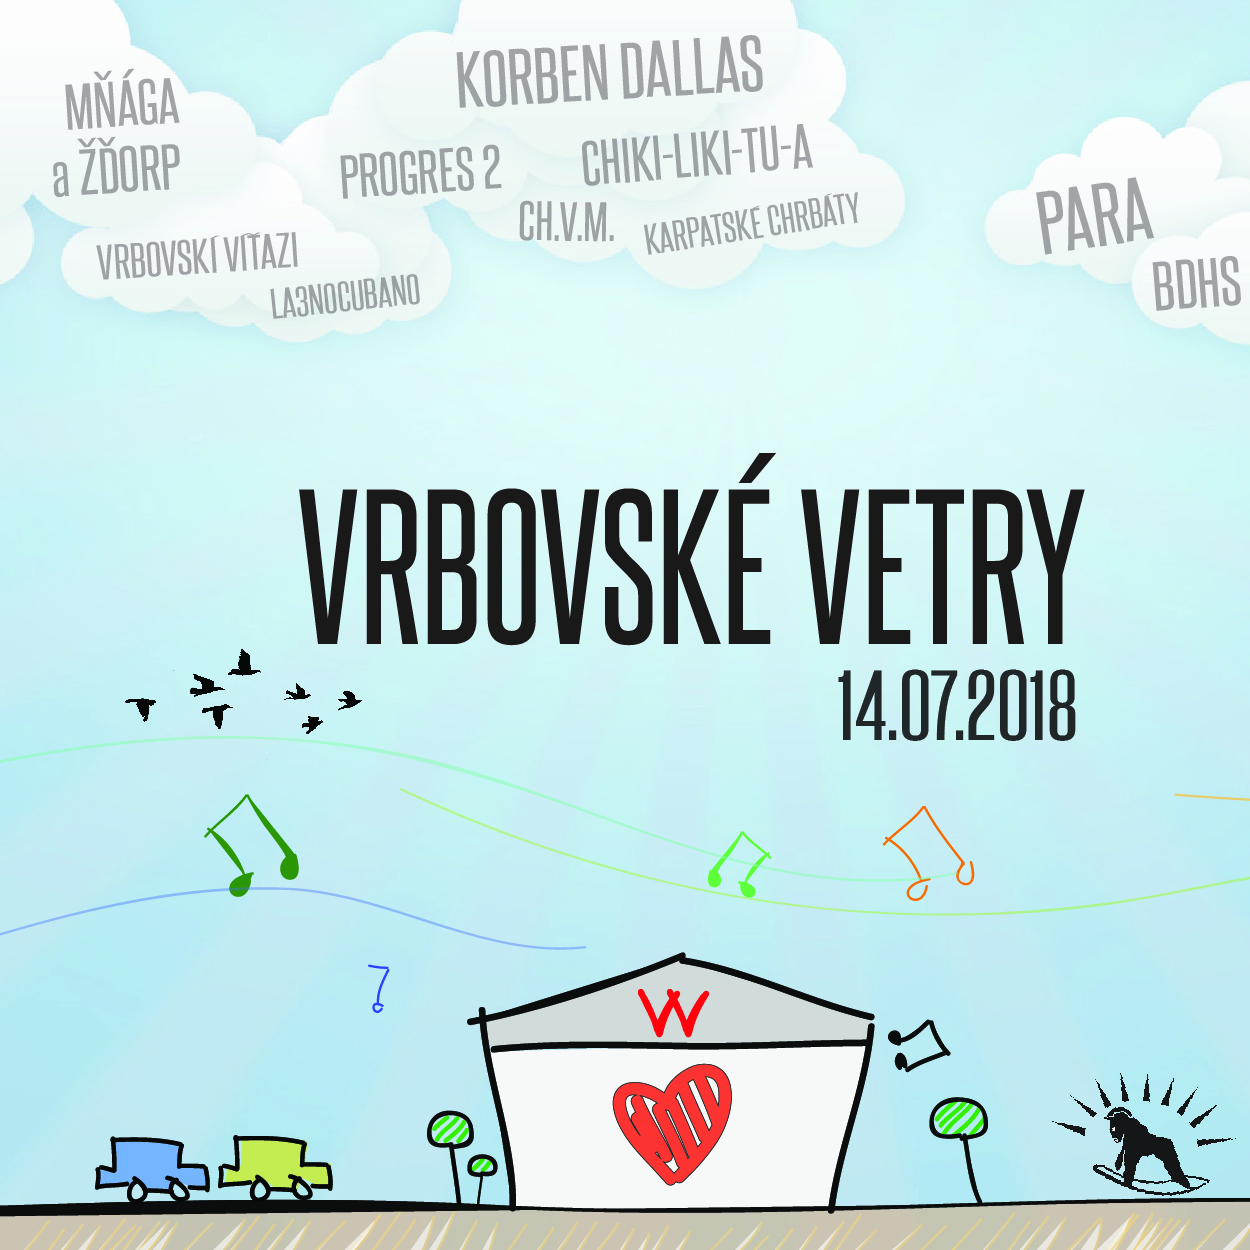 VRBOVSKÉ VETRY